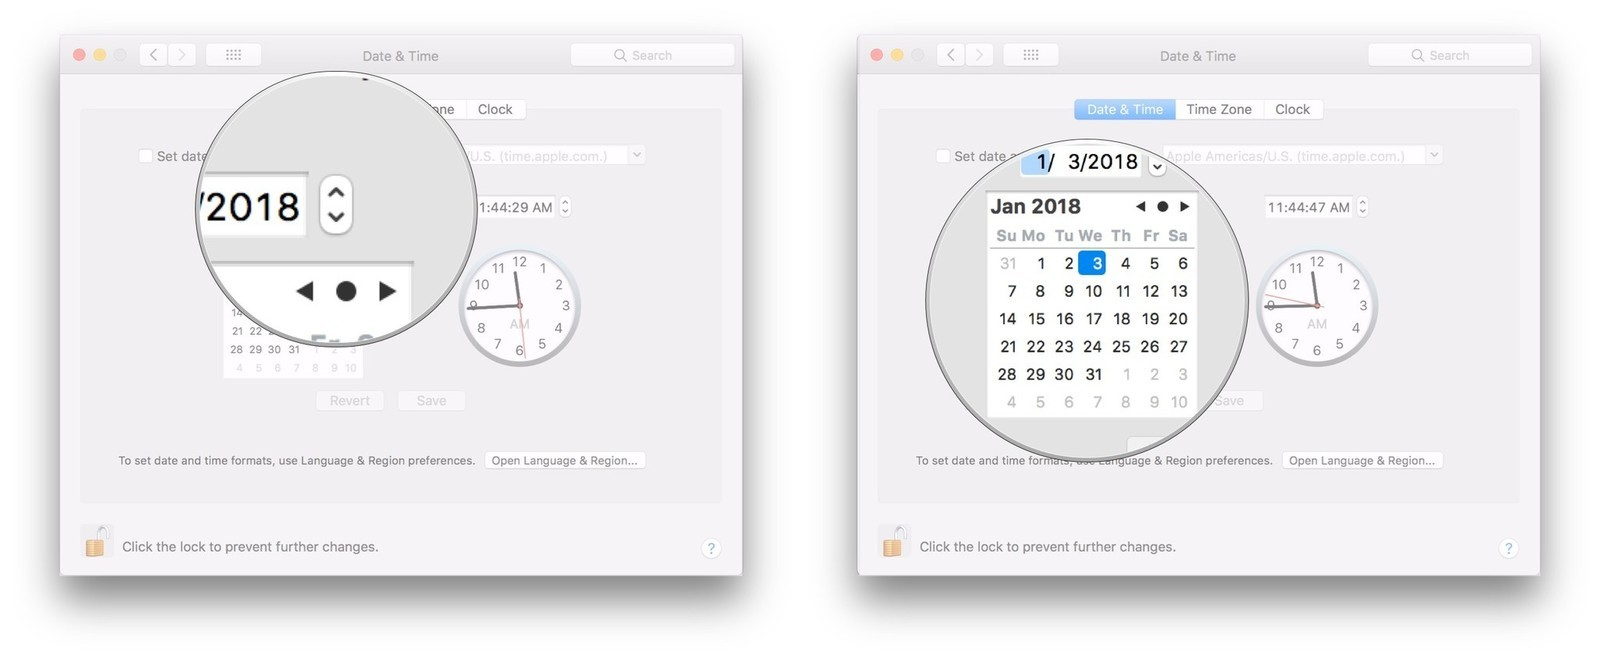 How to fix your Mac's clock when it displays the wrong time